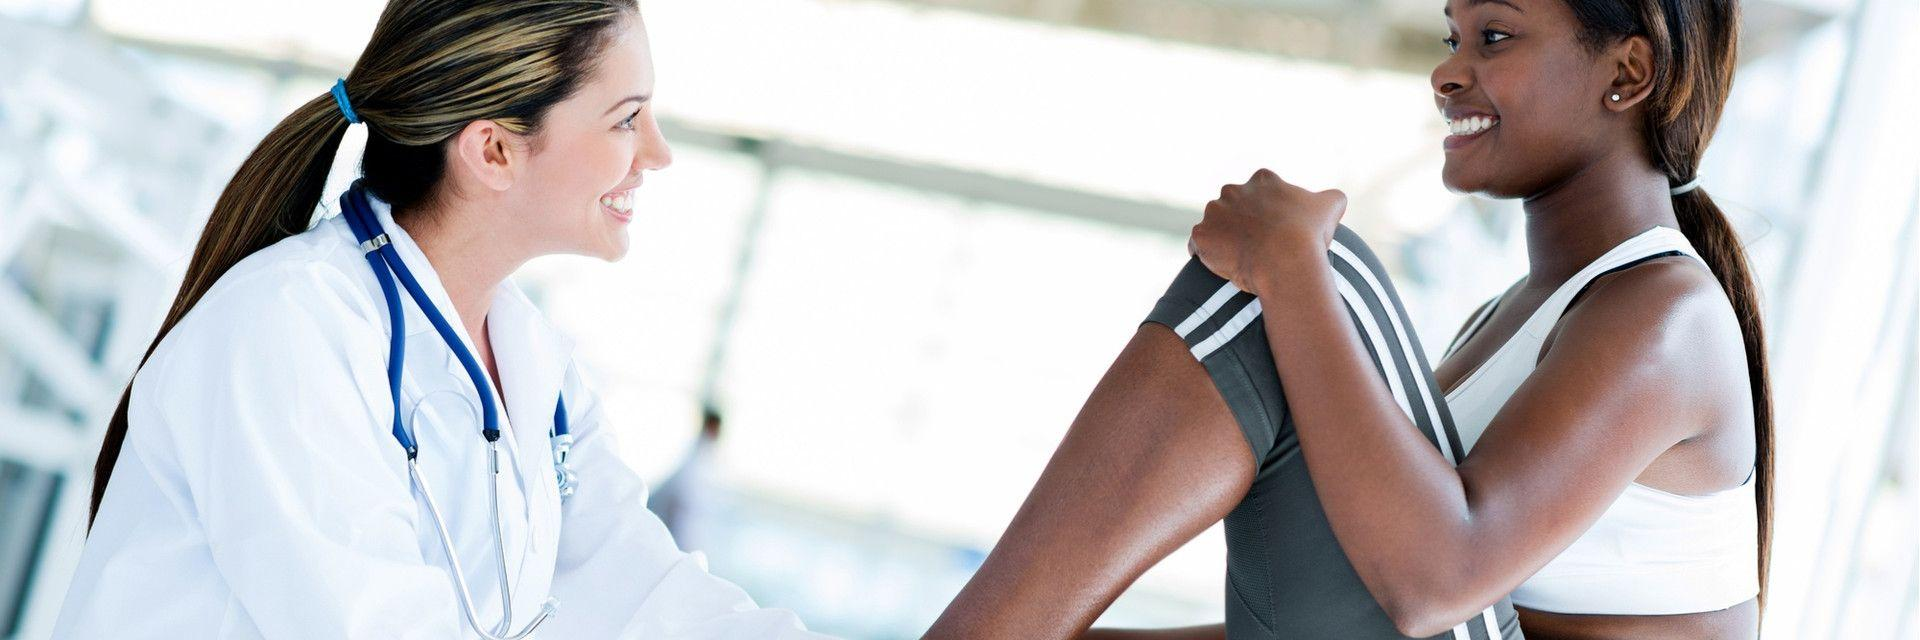 Where to Find Sports Medicine in Princeton | Rothman